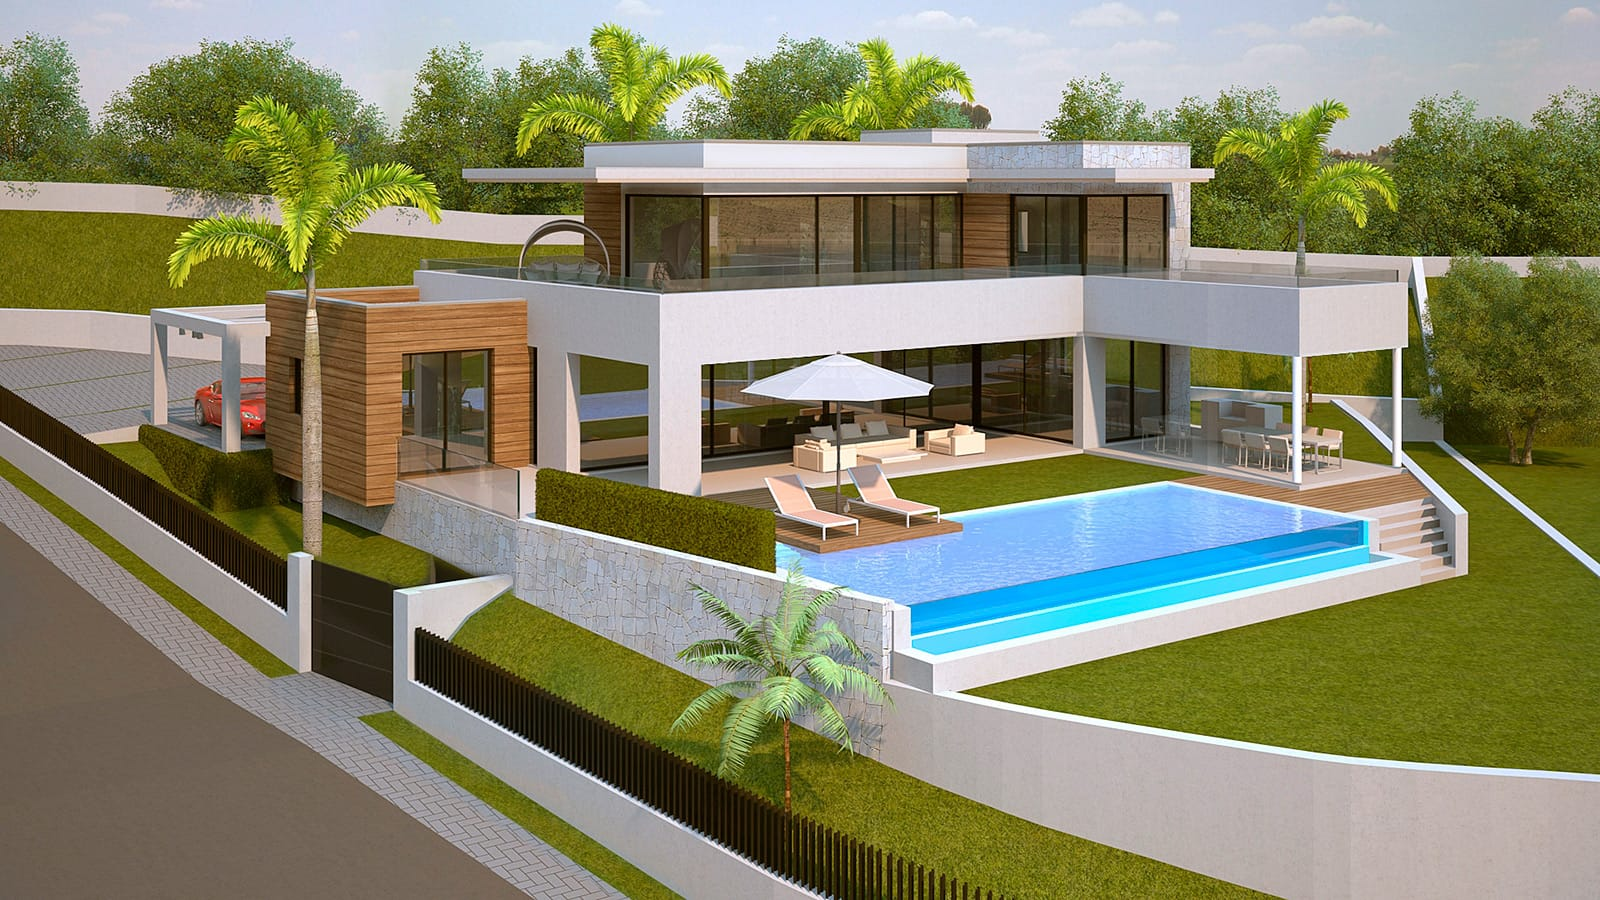 Offplan project for sale in La Alquería 6,6